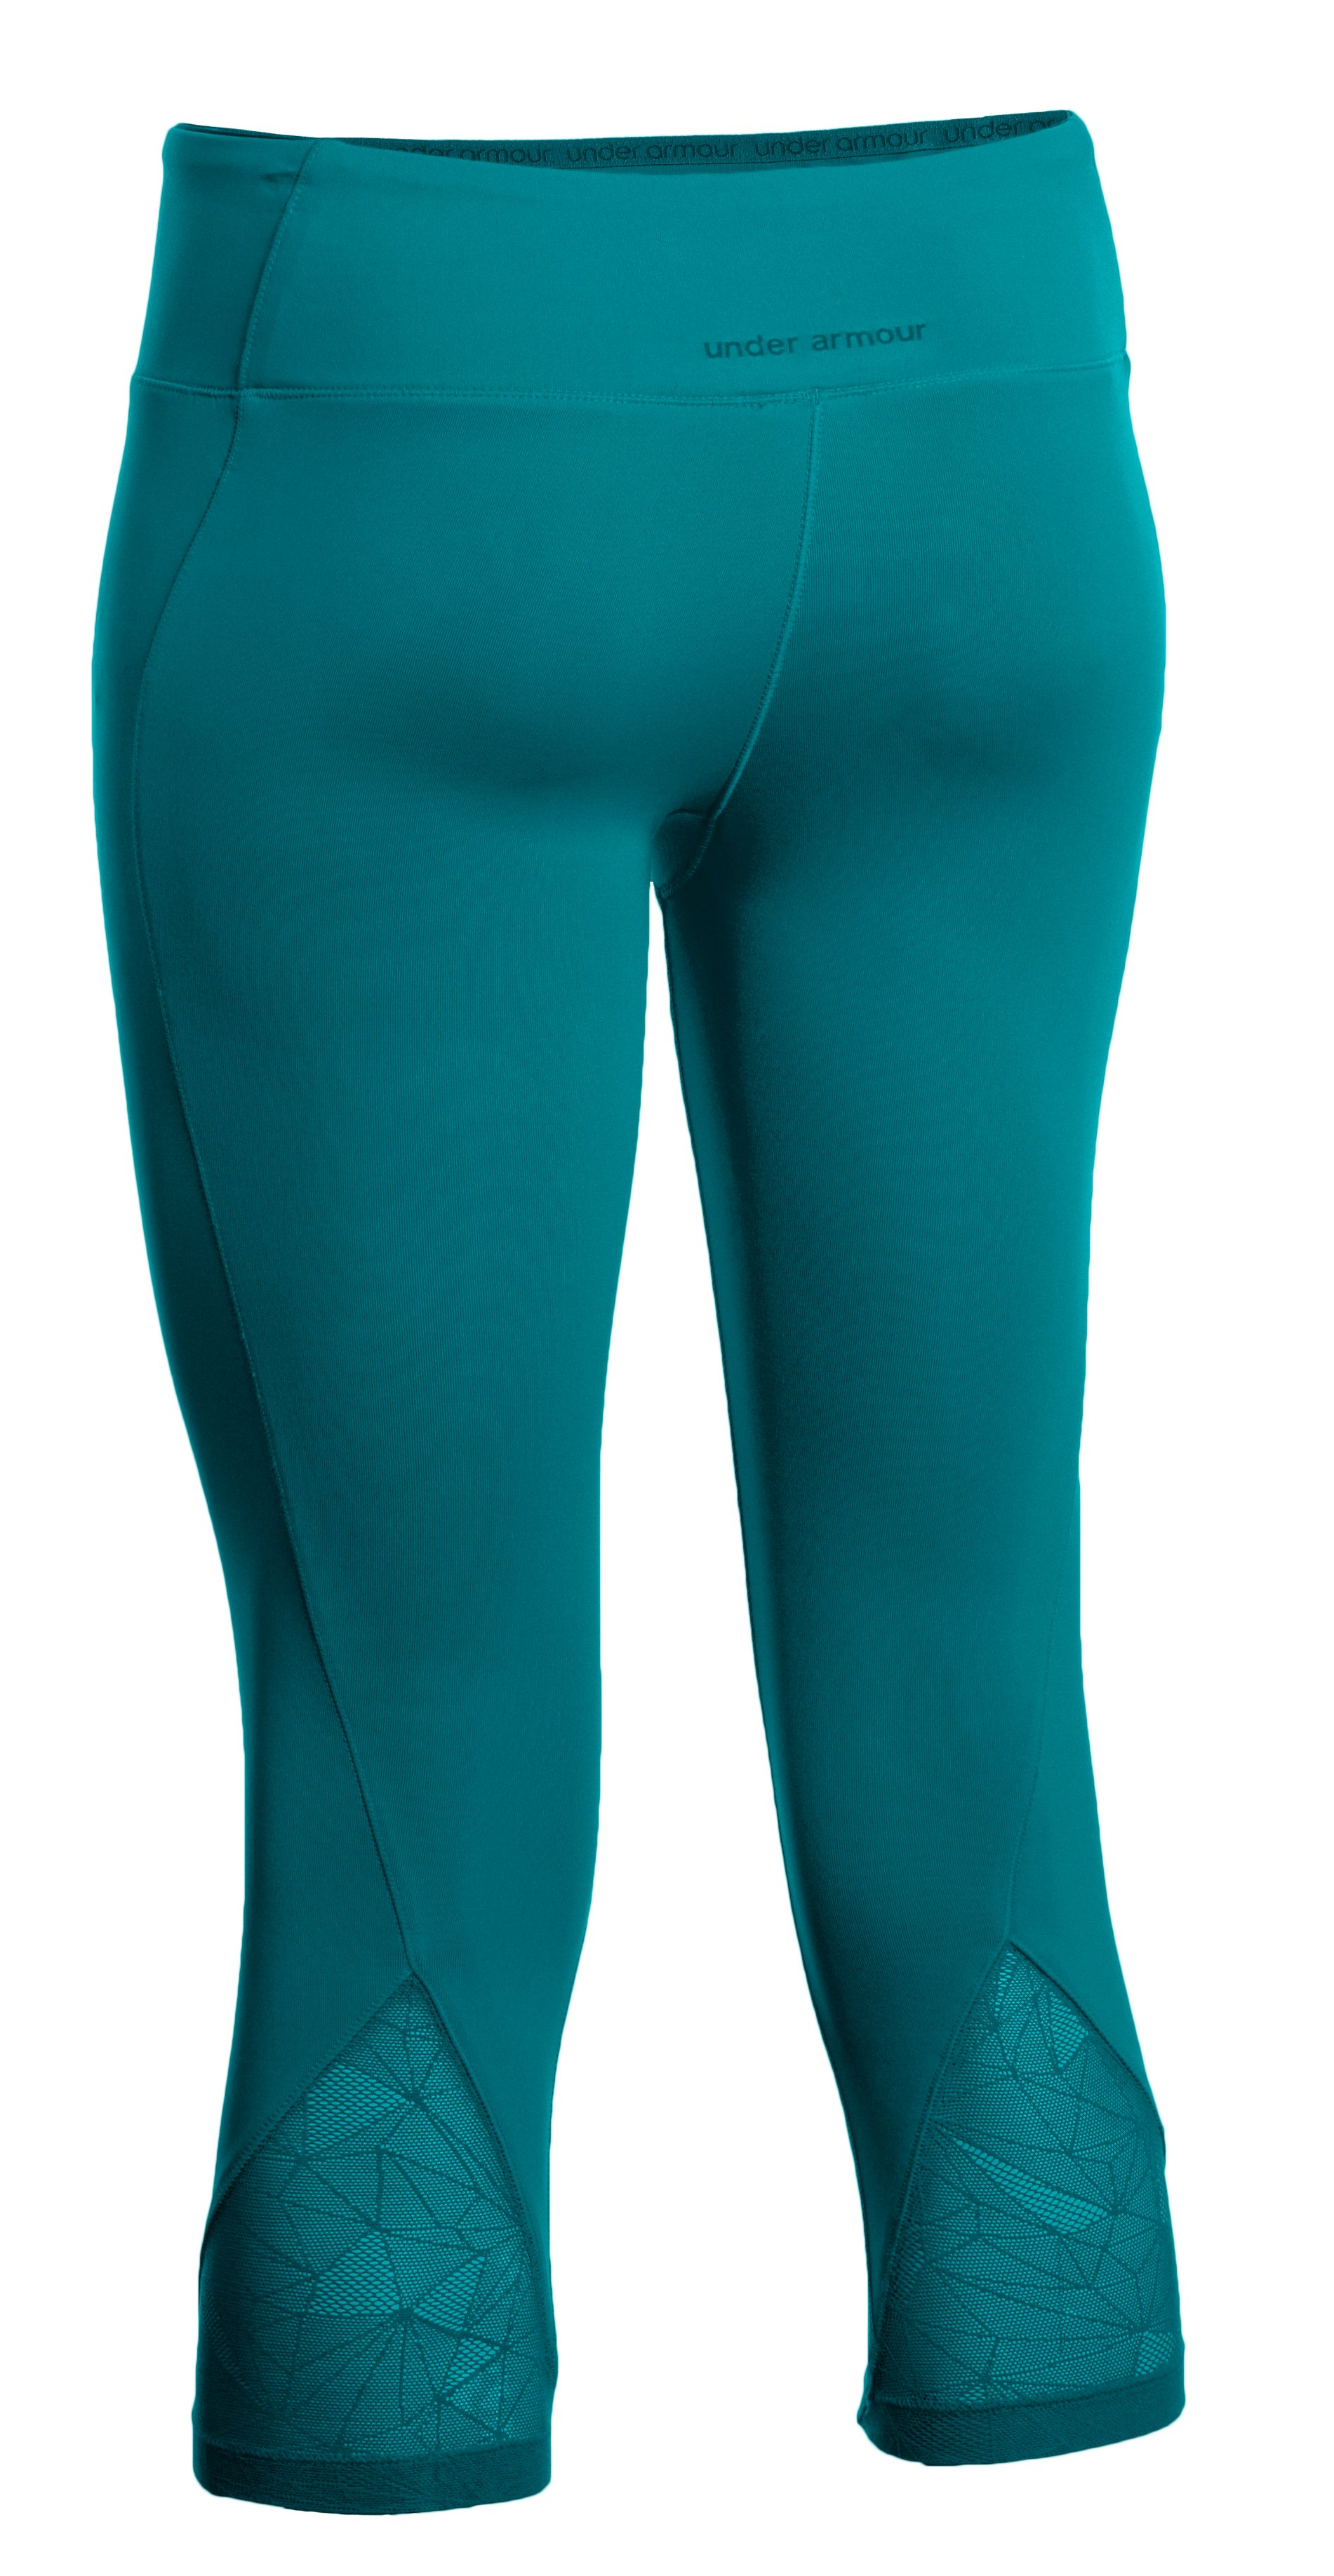 "Women's HeatGear® Sonic See It Through 17"" Capri, CERULEAN,"